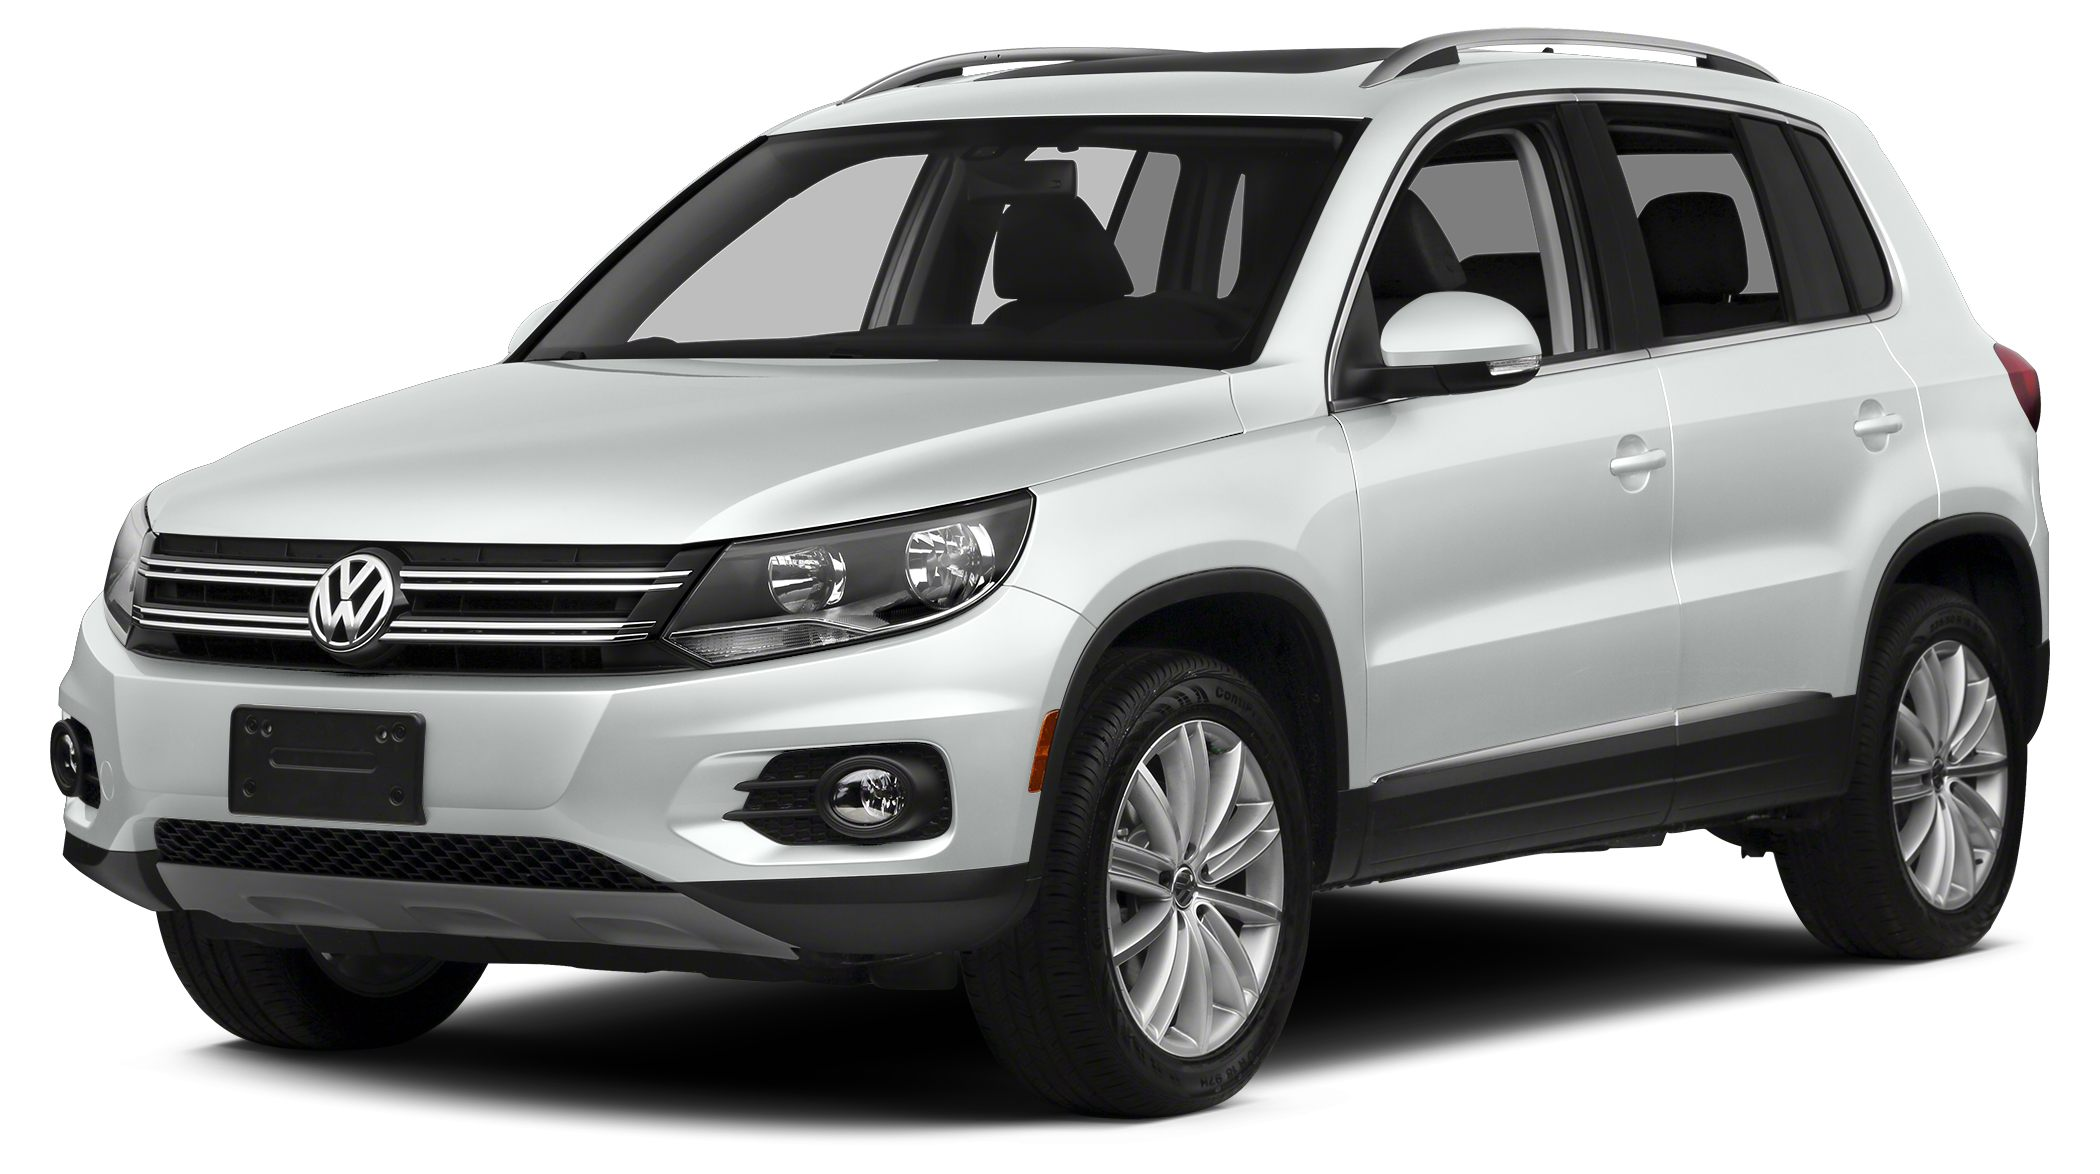 2013 Volkswagen Tiguan SE LOW MILES SPORT EDITION HEATED SEATS BLUETOOTH HEATED MIRRORS IMMAC